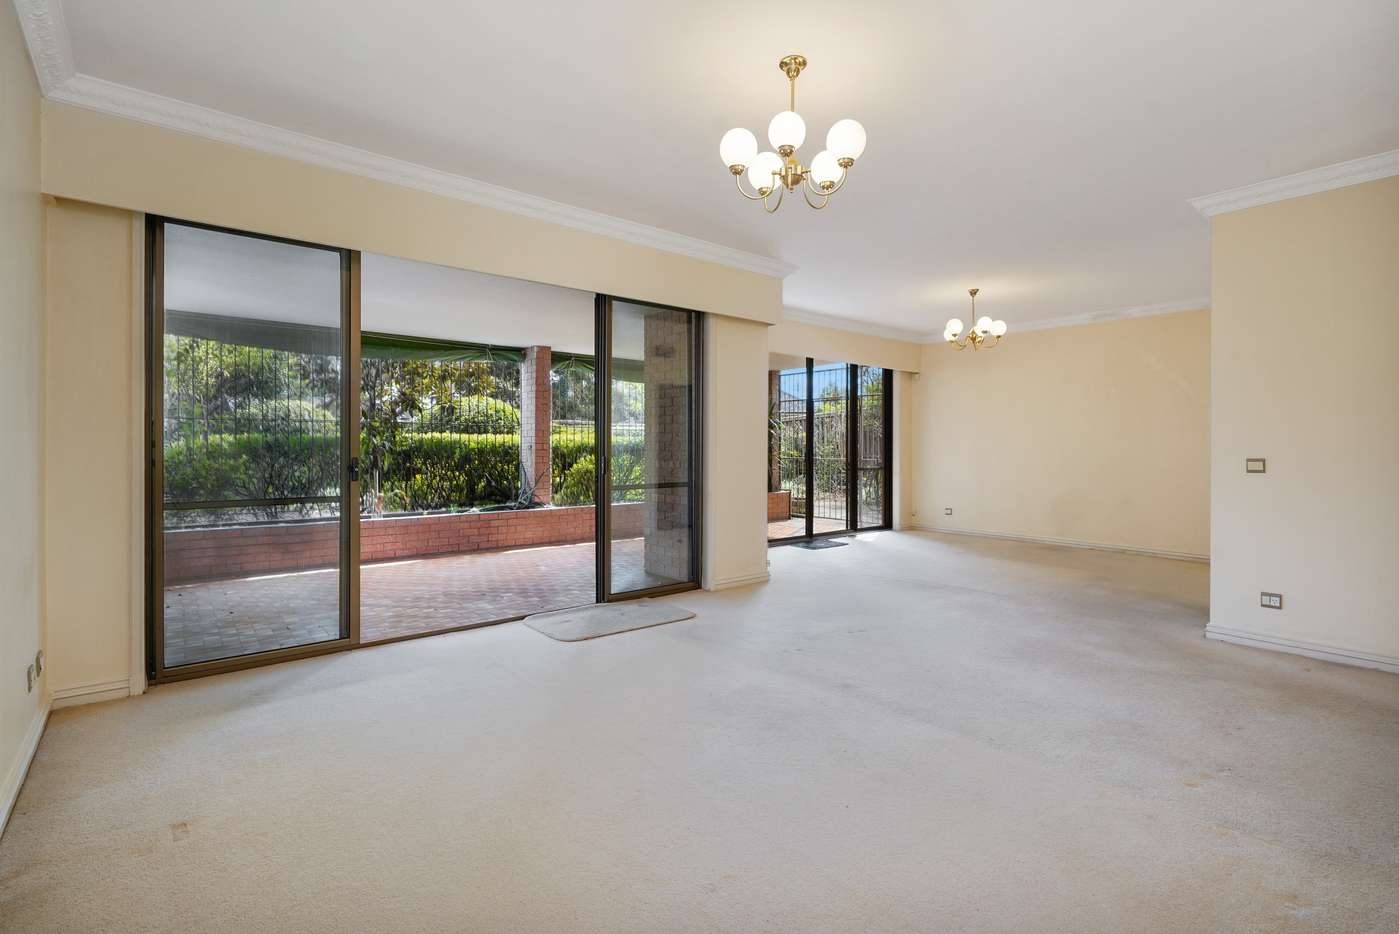 Main view of Homely apartment listing, 1/16 Darling Point Road, Darling Point, NSW 2027